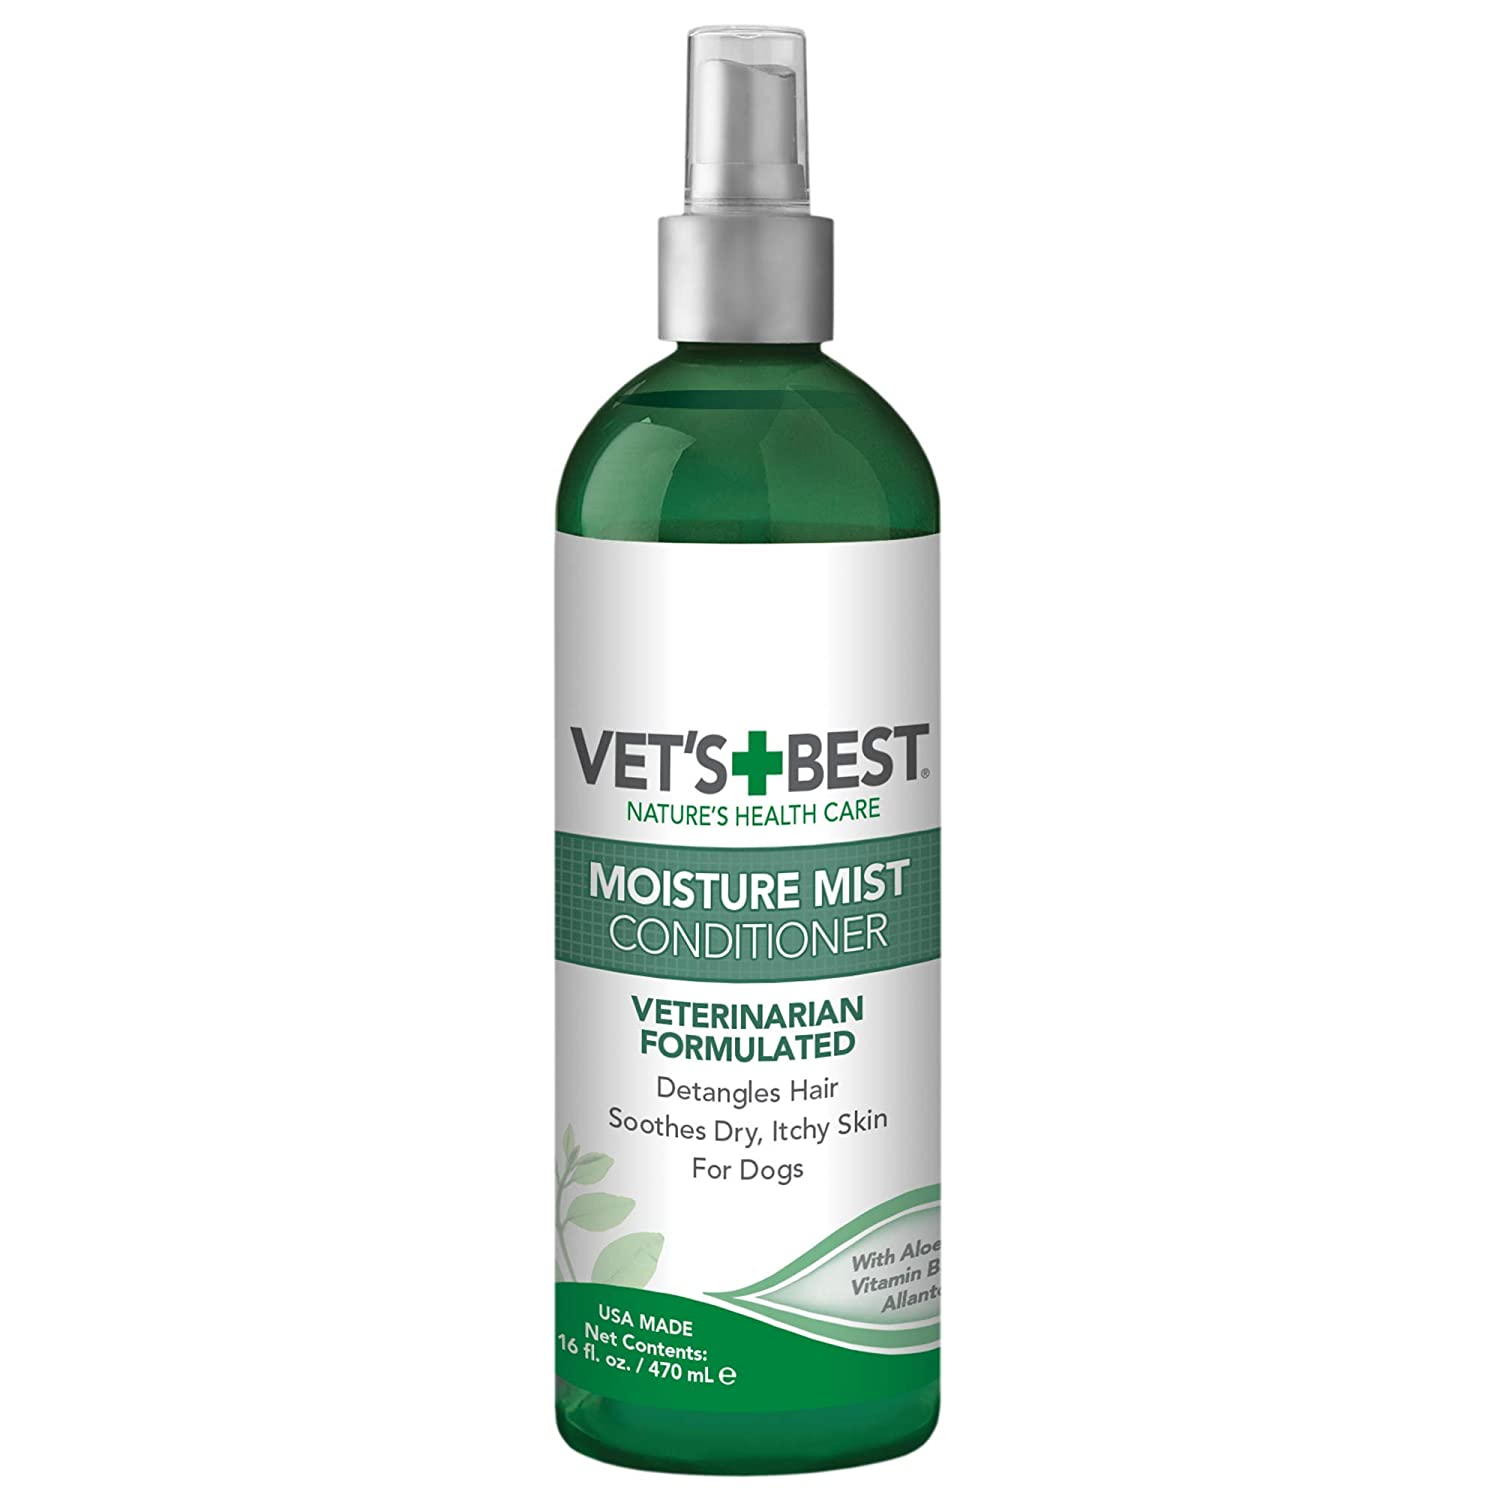 Vet's Best Moisture Mist Dog Dry Skin Conditioner| Dog Conditioner and Detangler Spray | Relieves Itchy Skin, Refreshes & Soothes | 16 oz